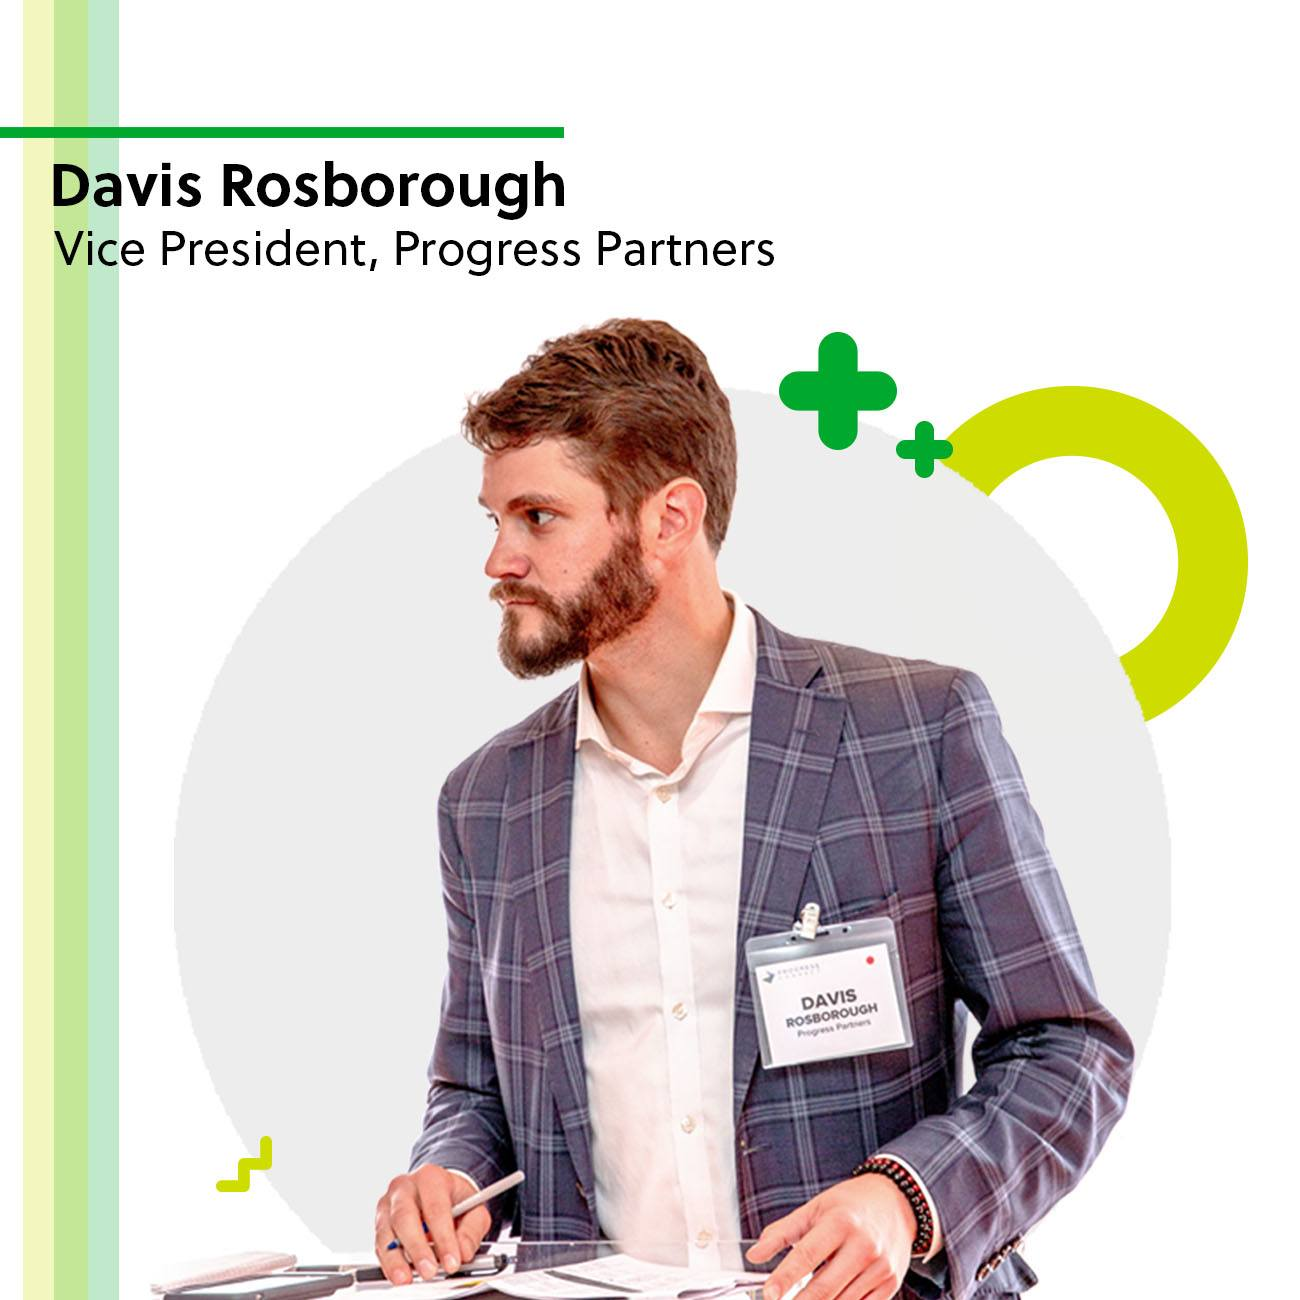 Davis Rosborough, Vice President of Progress Partners